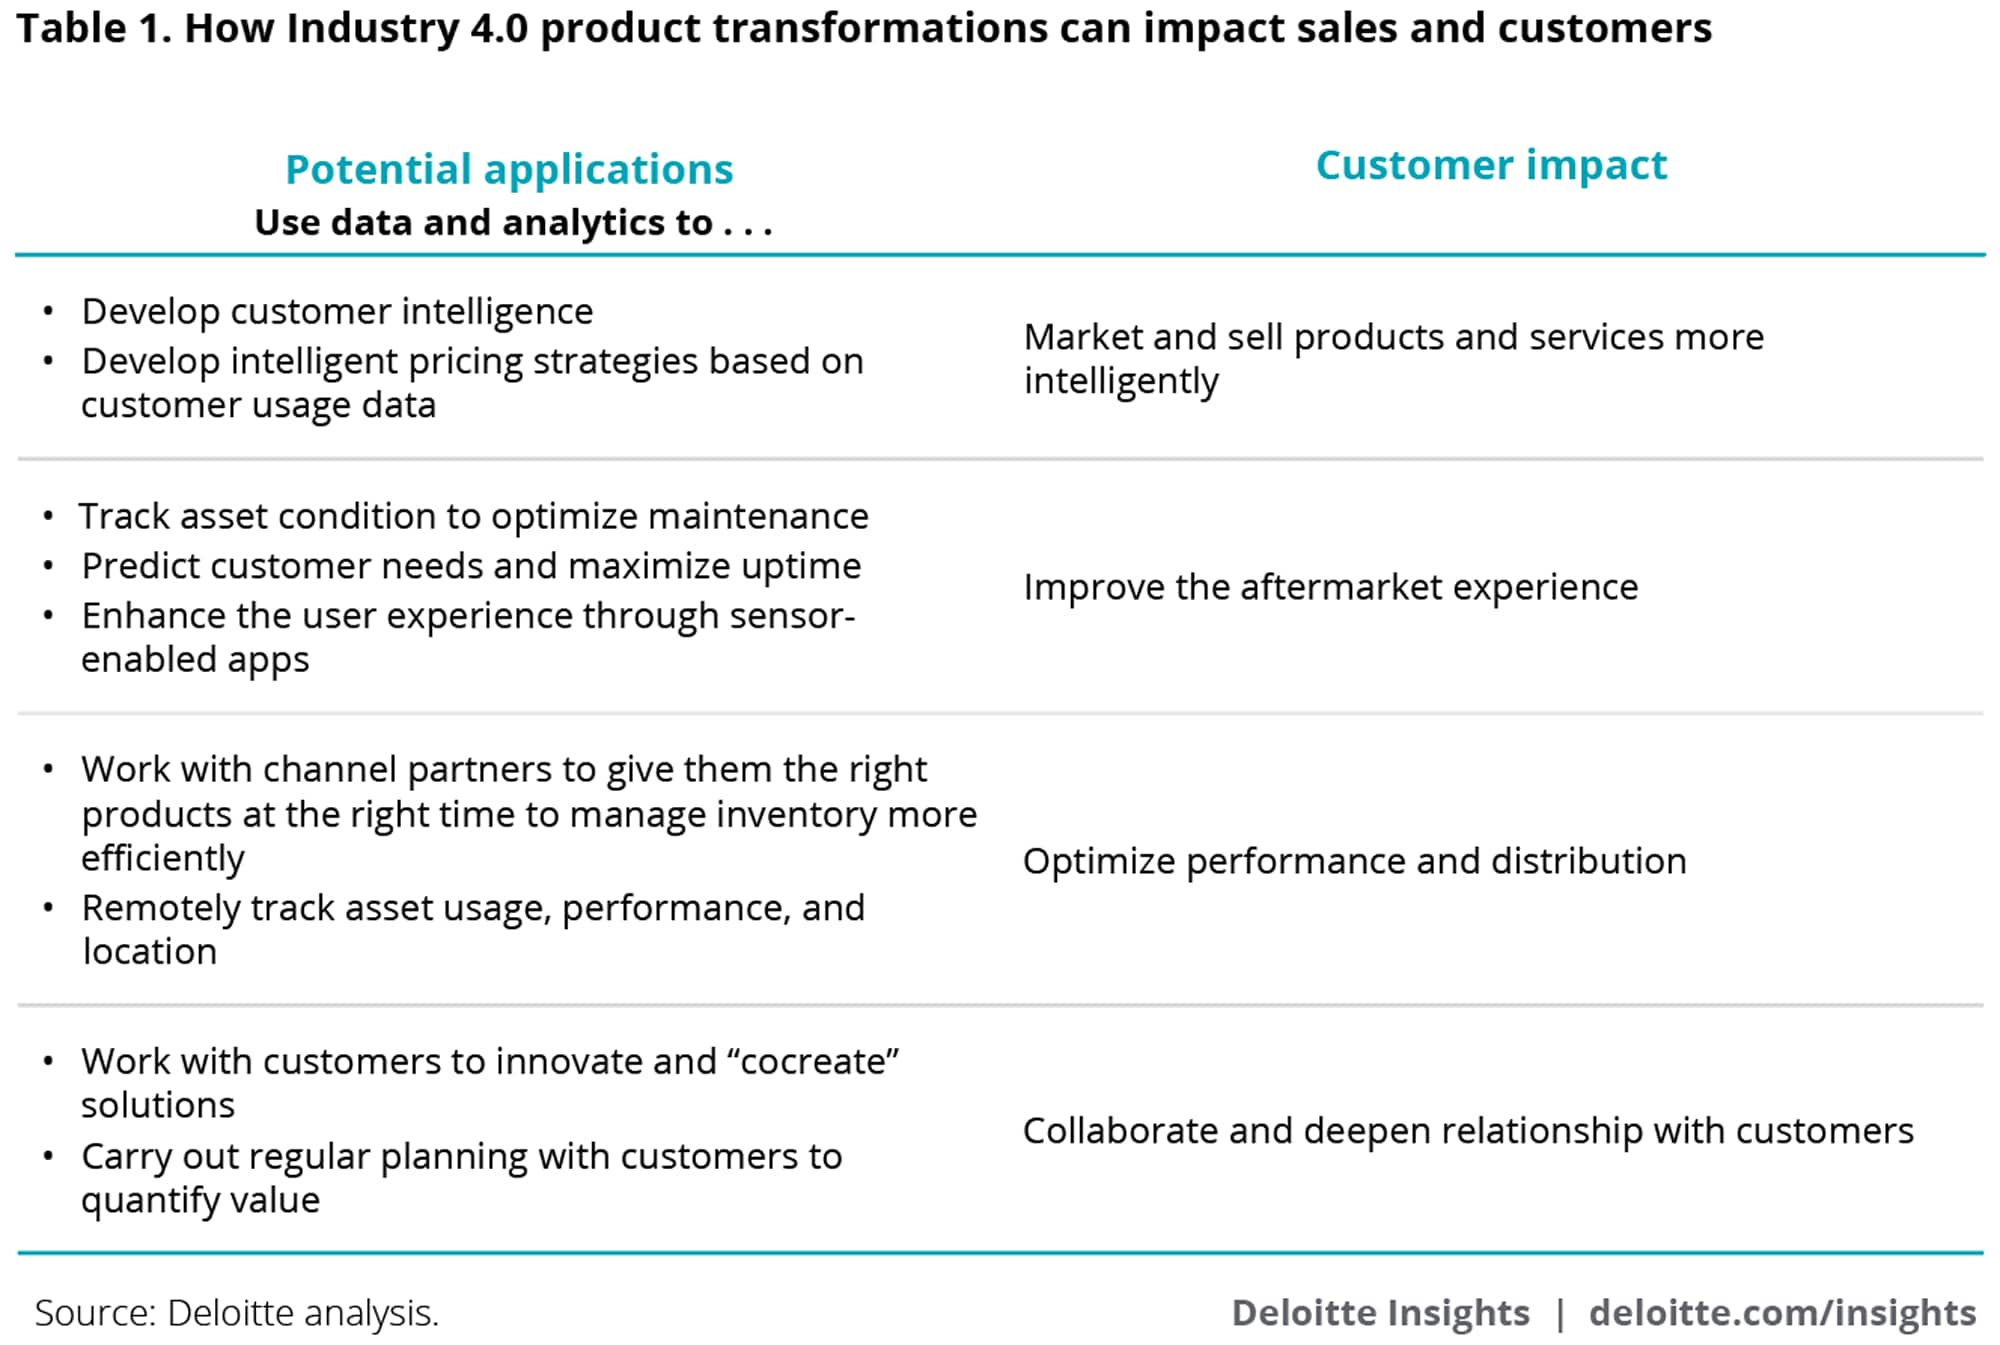 How Industry 4.0 product transformations can impact sales and customers